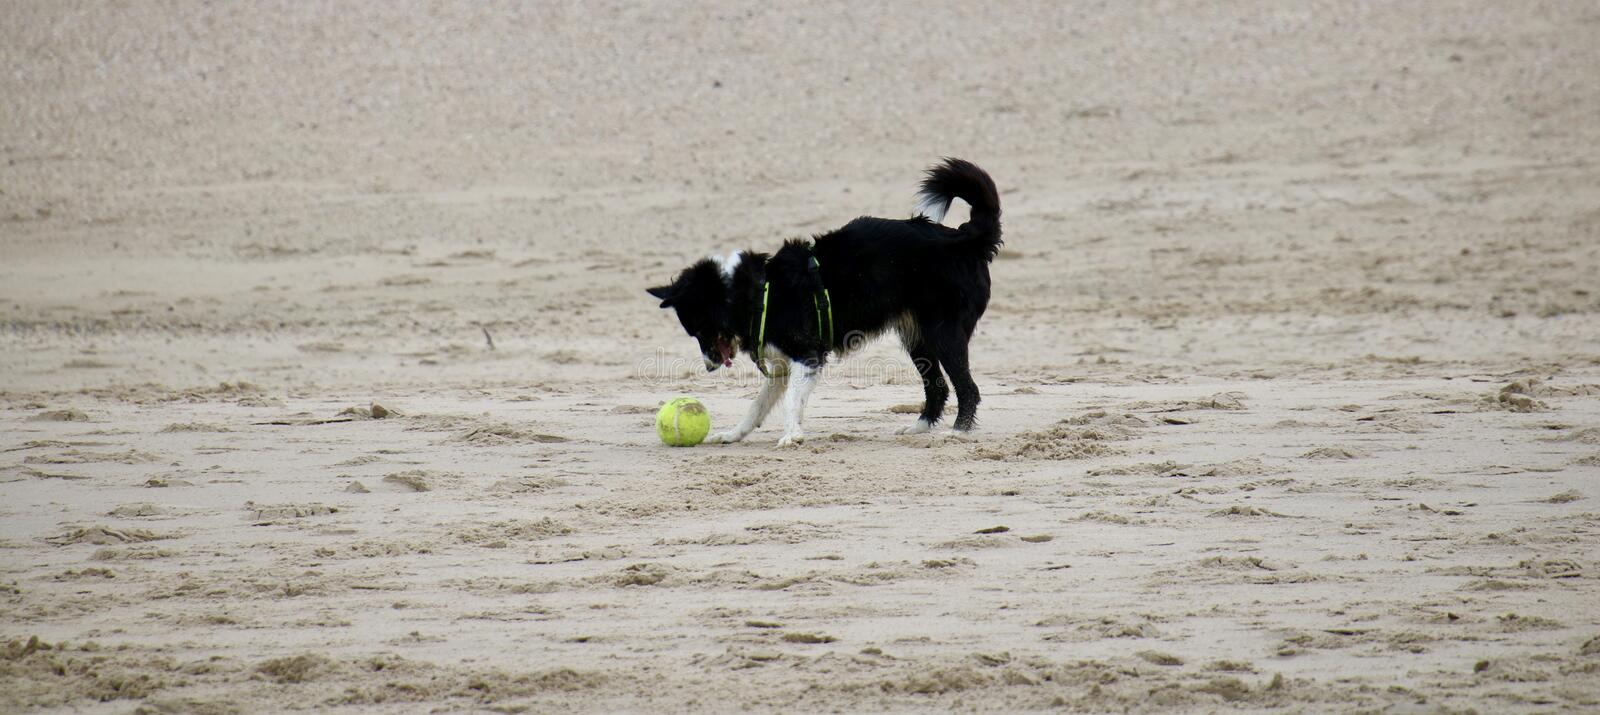 A dog is playing on the beach stock photo